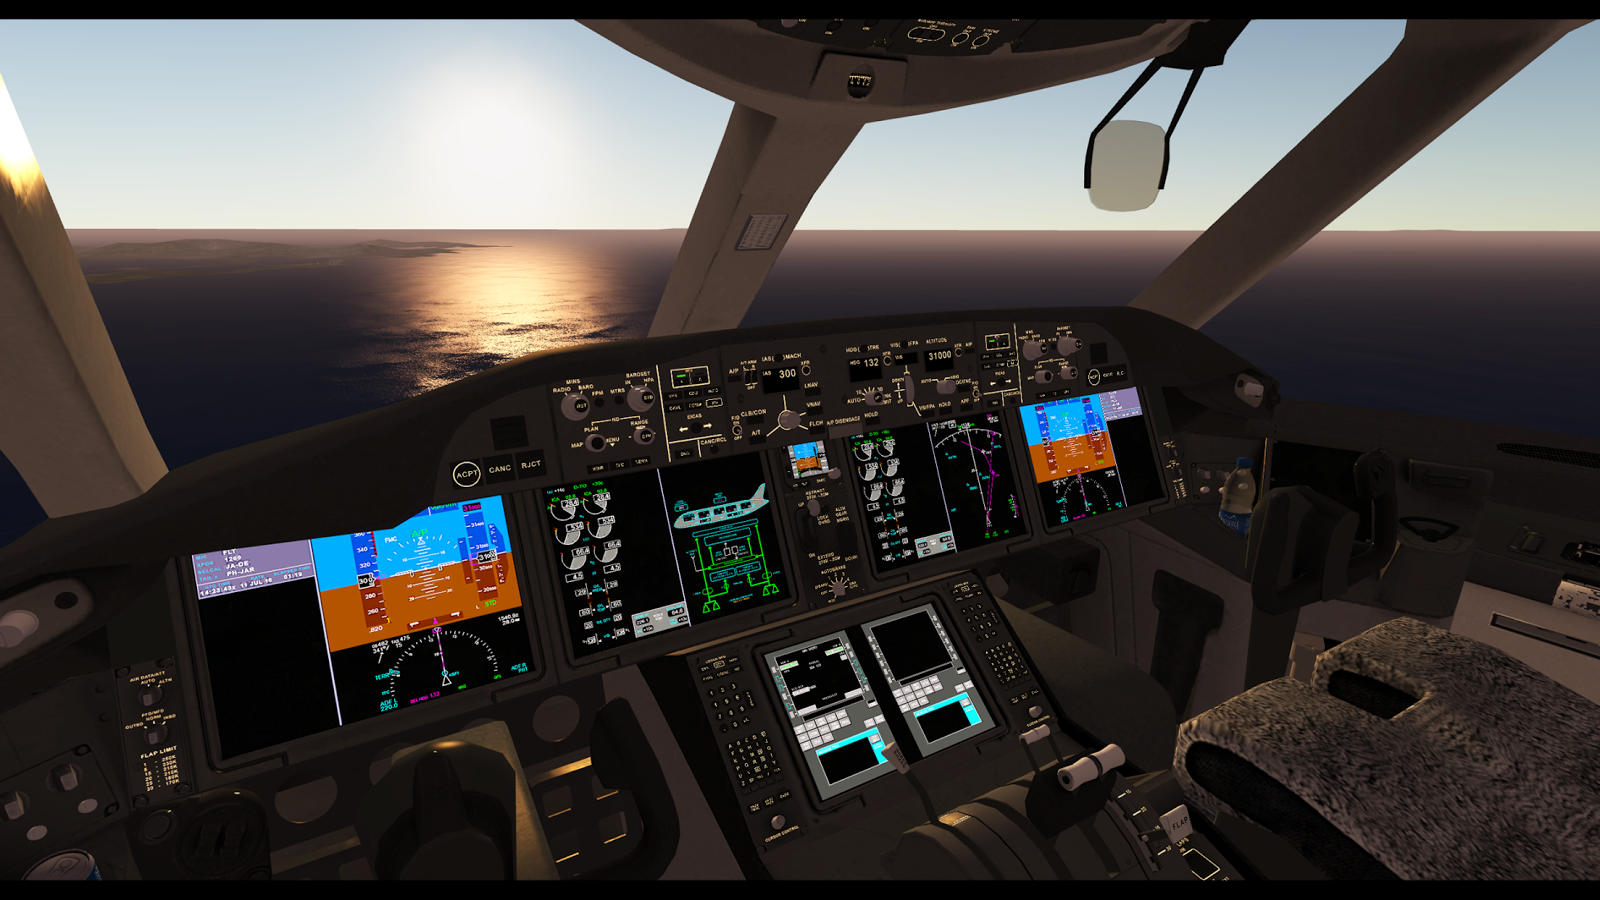 Flight Simulator X Wallpaper: Android Apps On Google Play